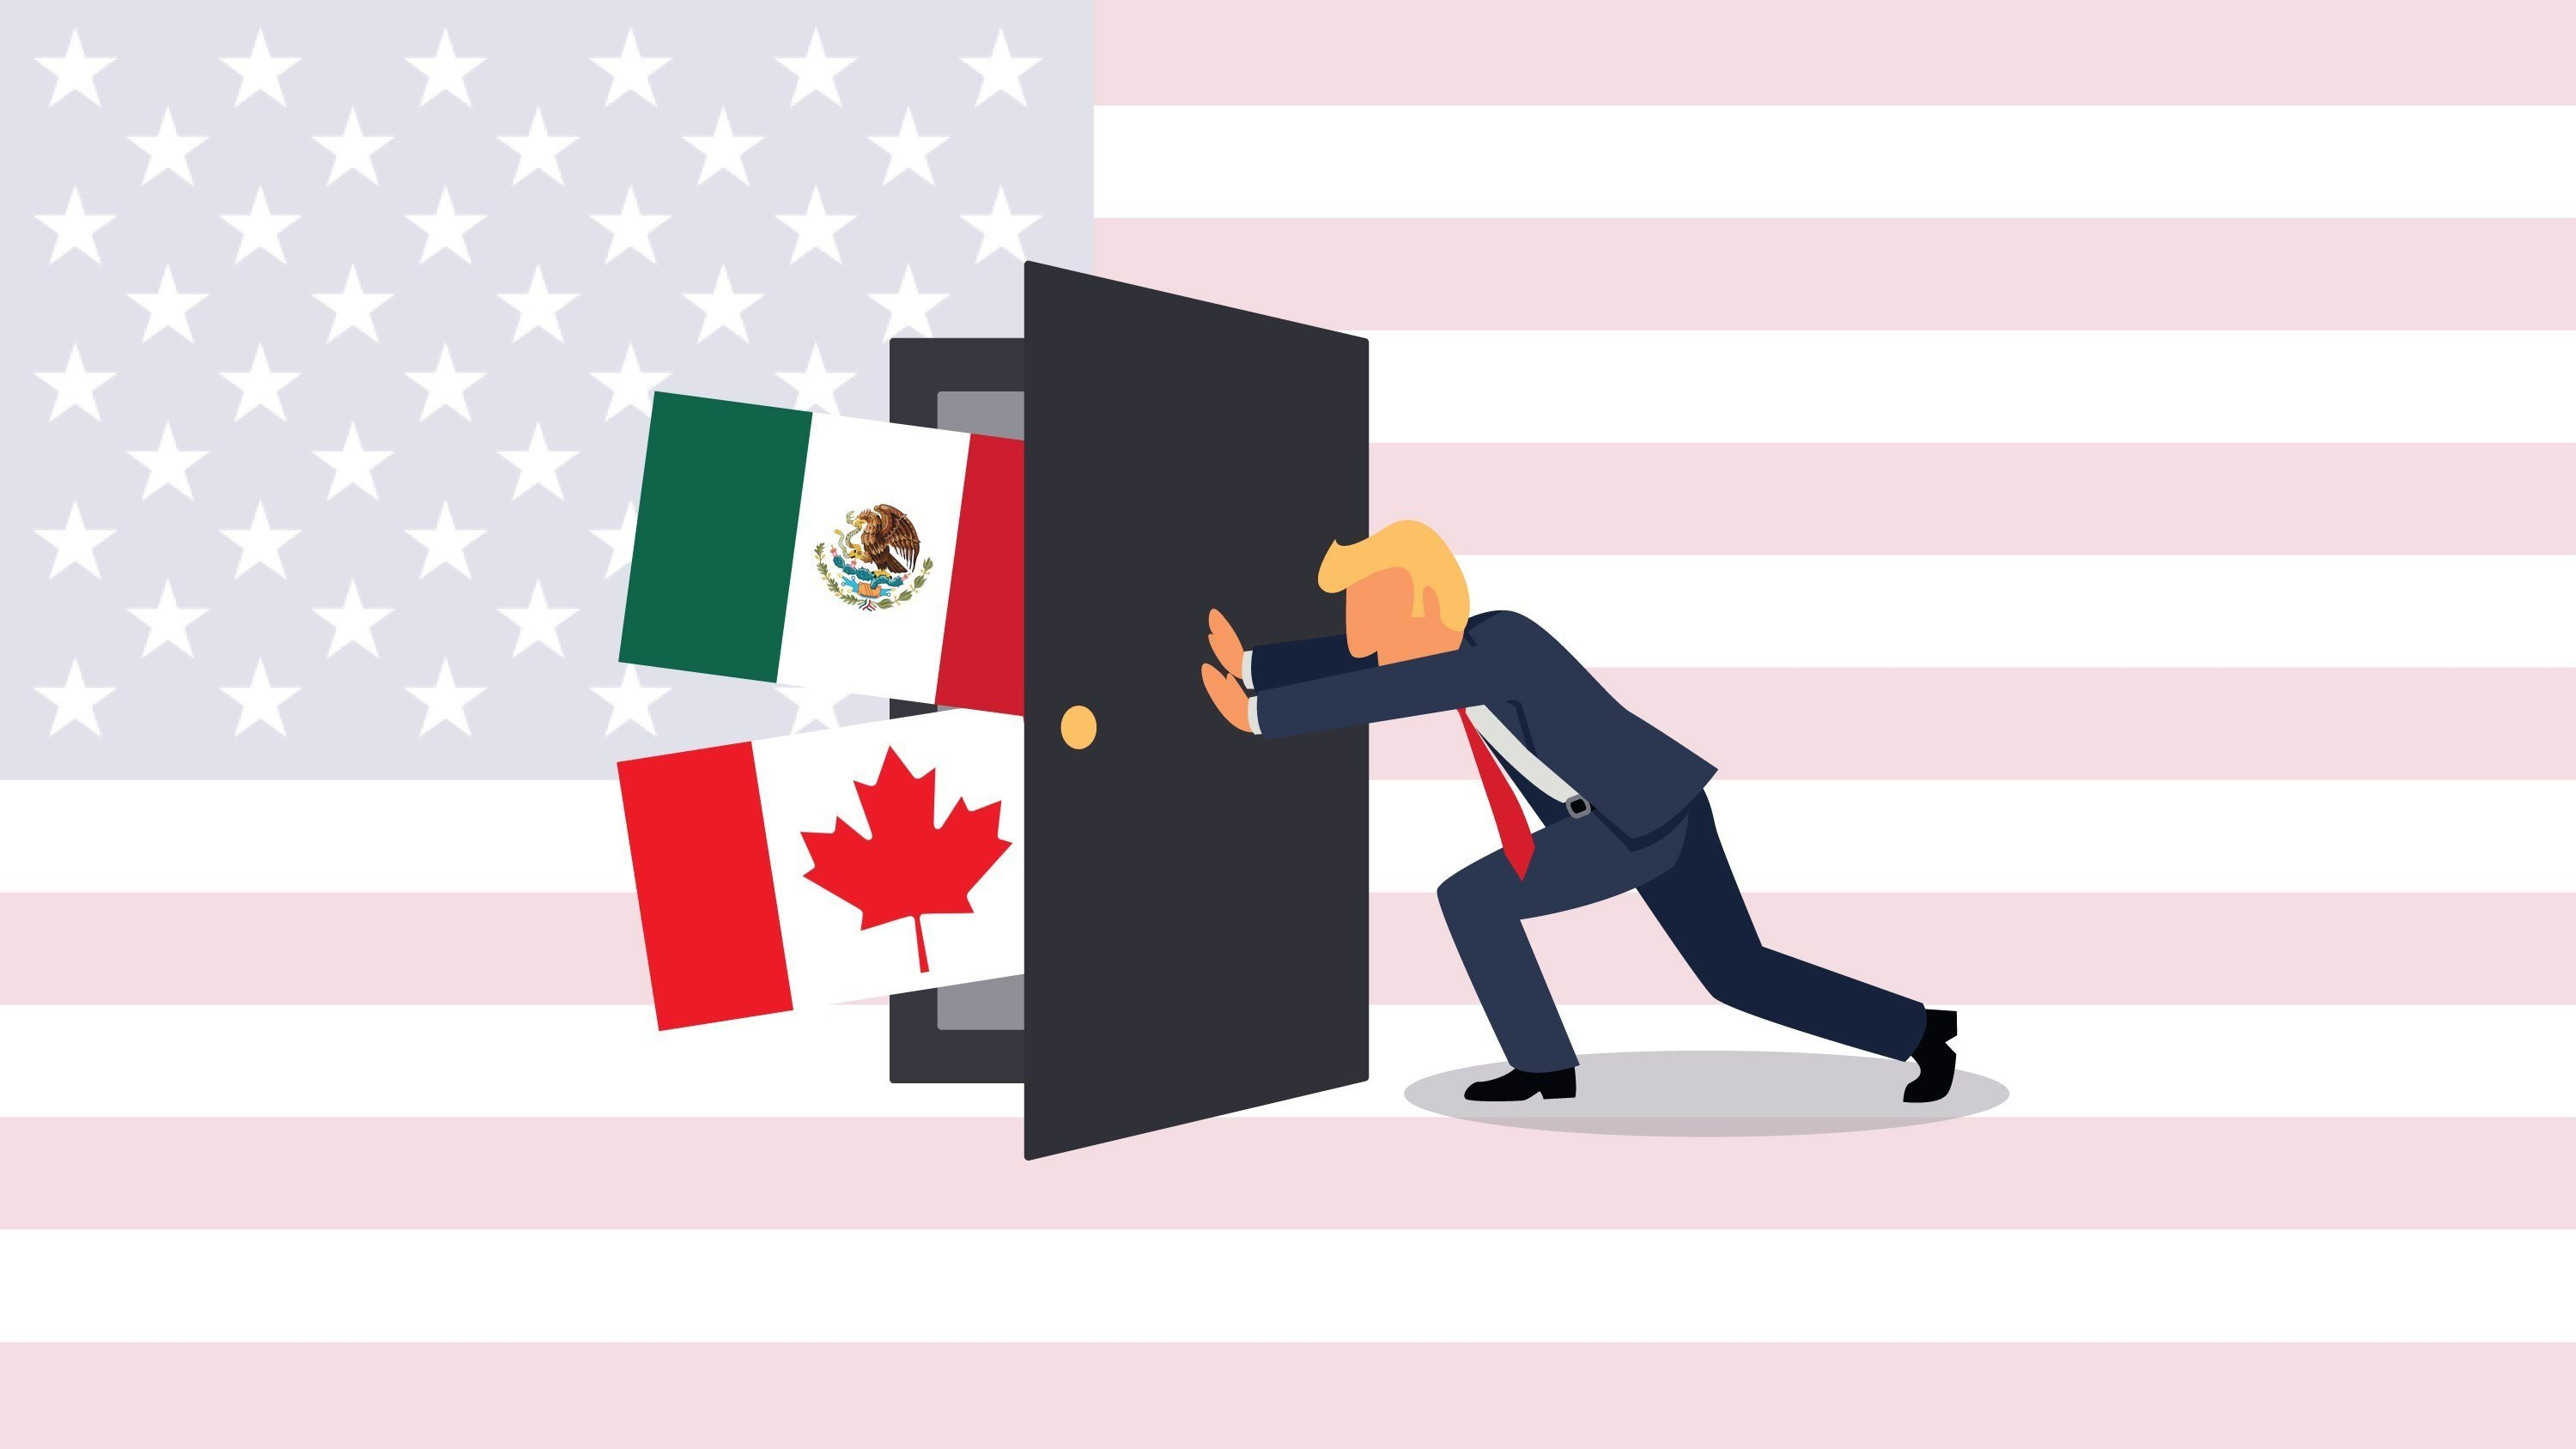 No major progress has been made on key issues through the first five rounds of the renegotiation of NAFTA